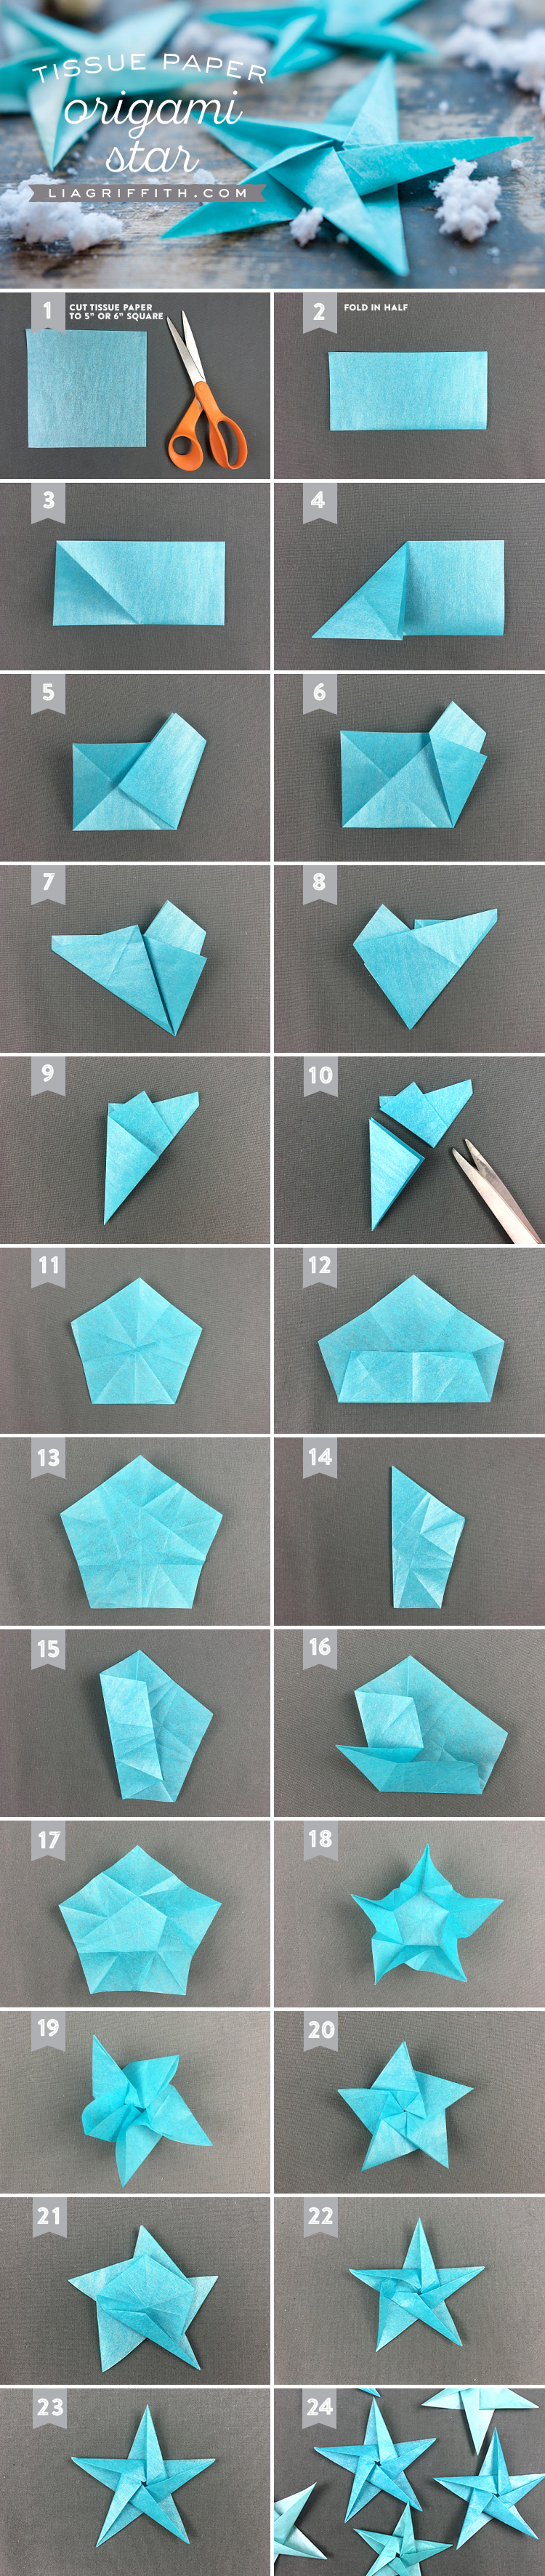 Tissue star origami christmas ornaments lia griffith for Cool things to make with paper for your room